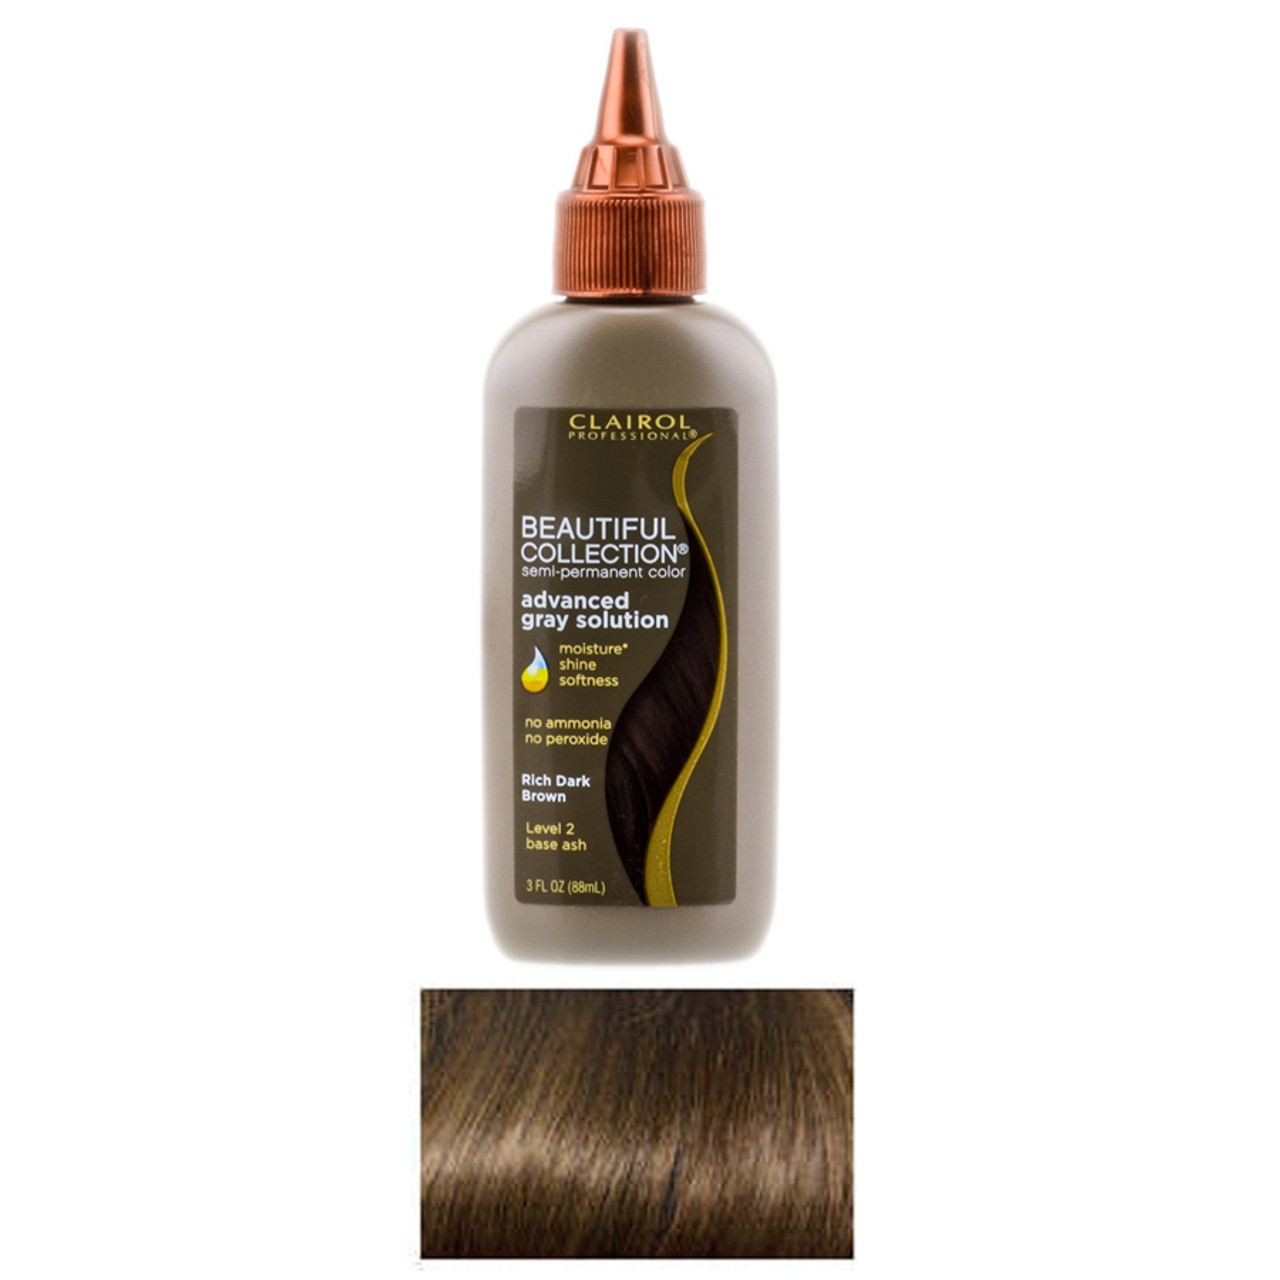 Clairol Professional Beautiful Collection Semi Permanent Color